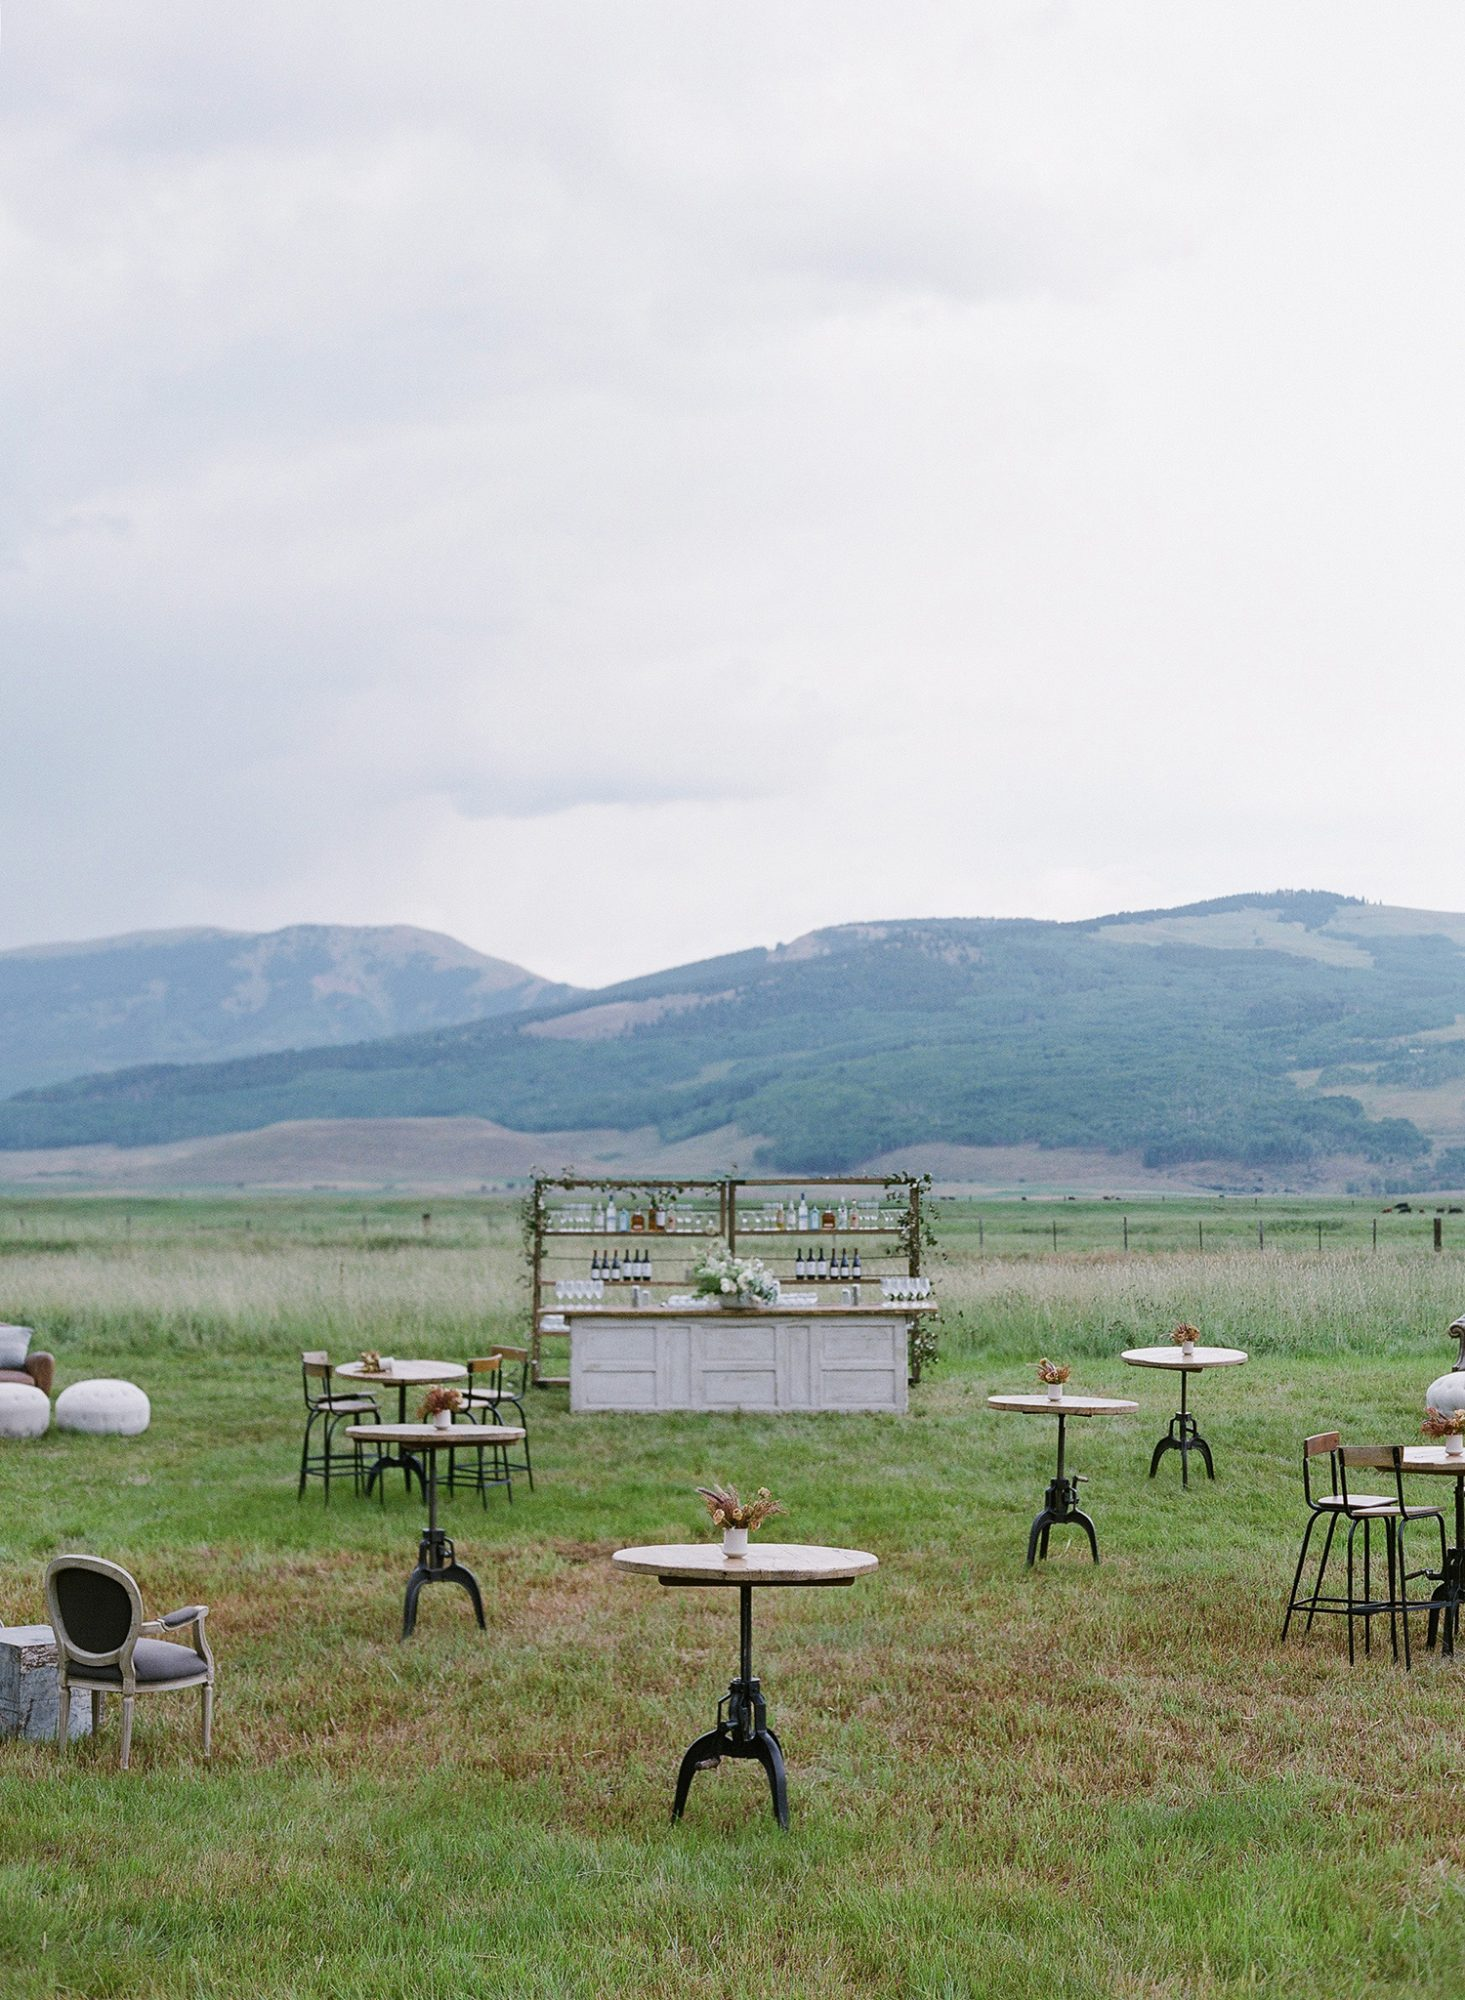 sloan scott wedding cocktail hour on lawn against mountains